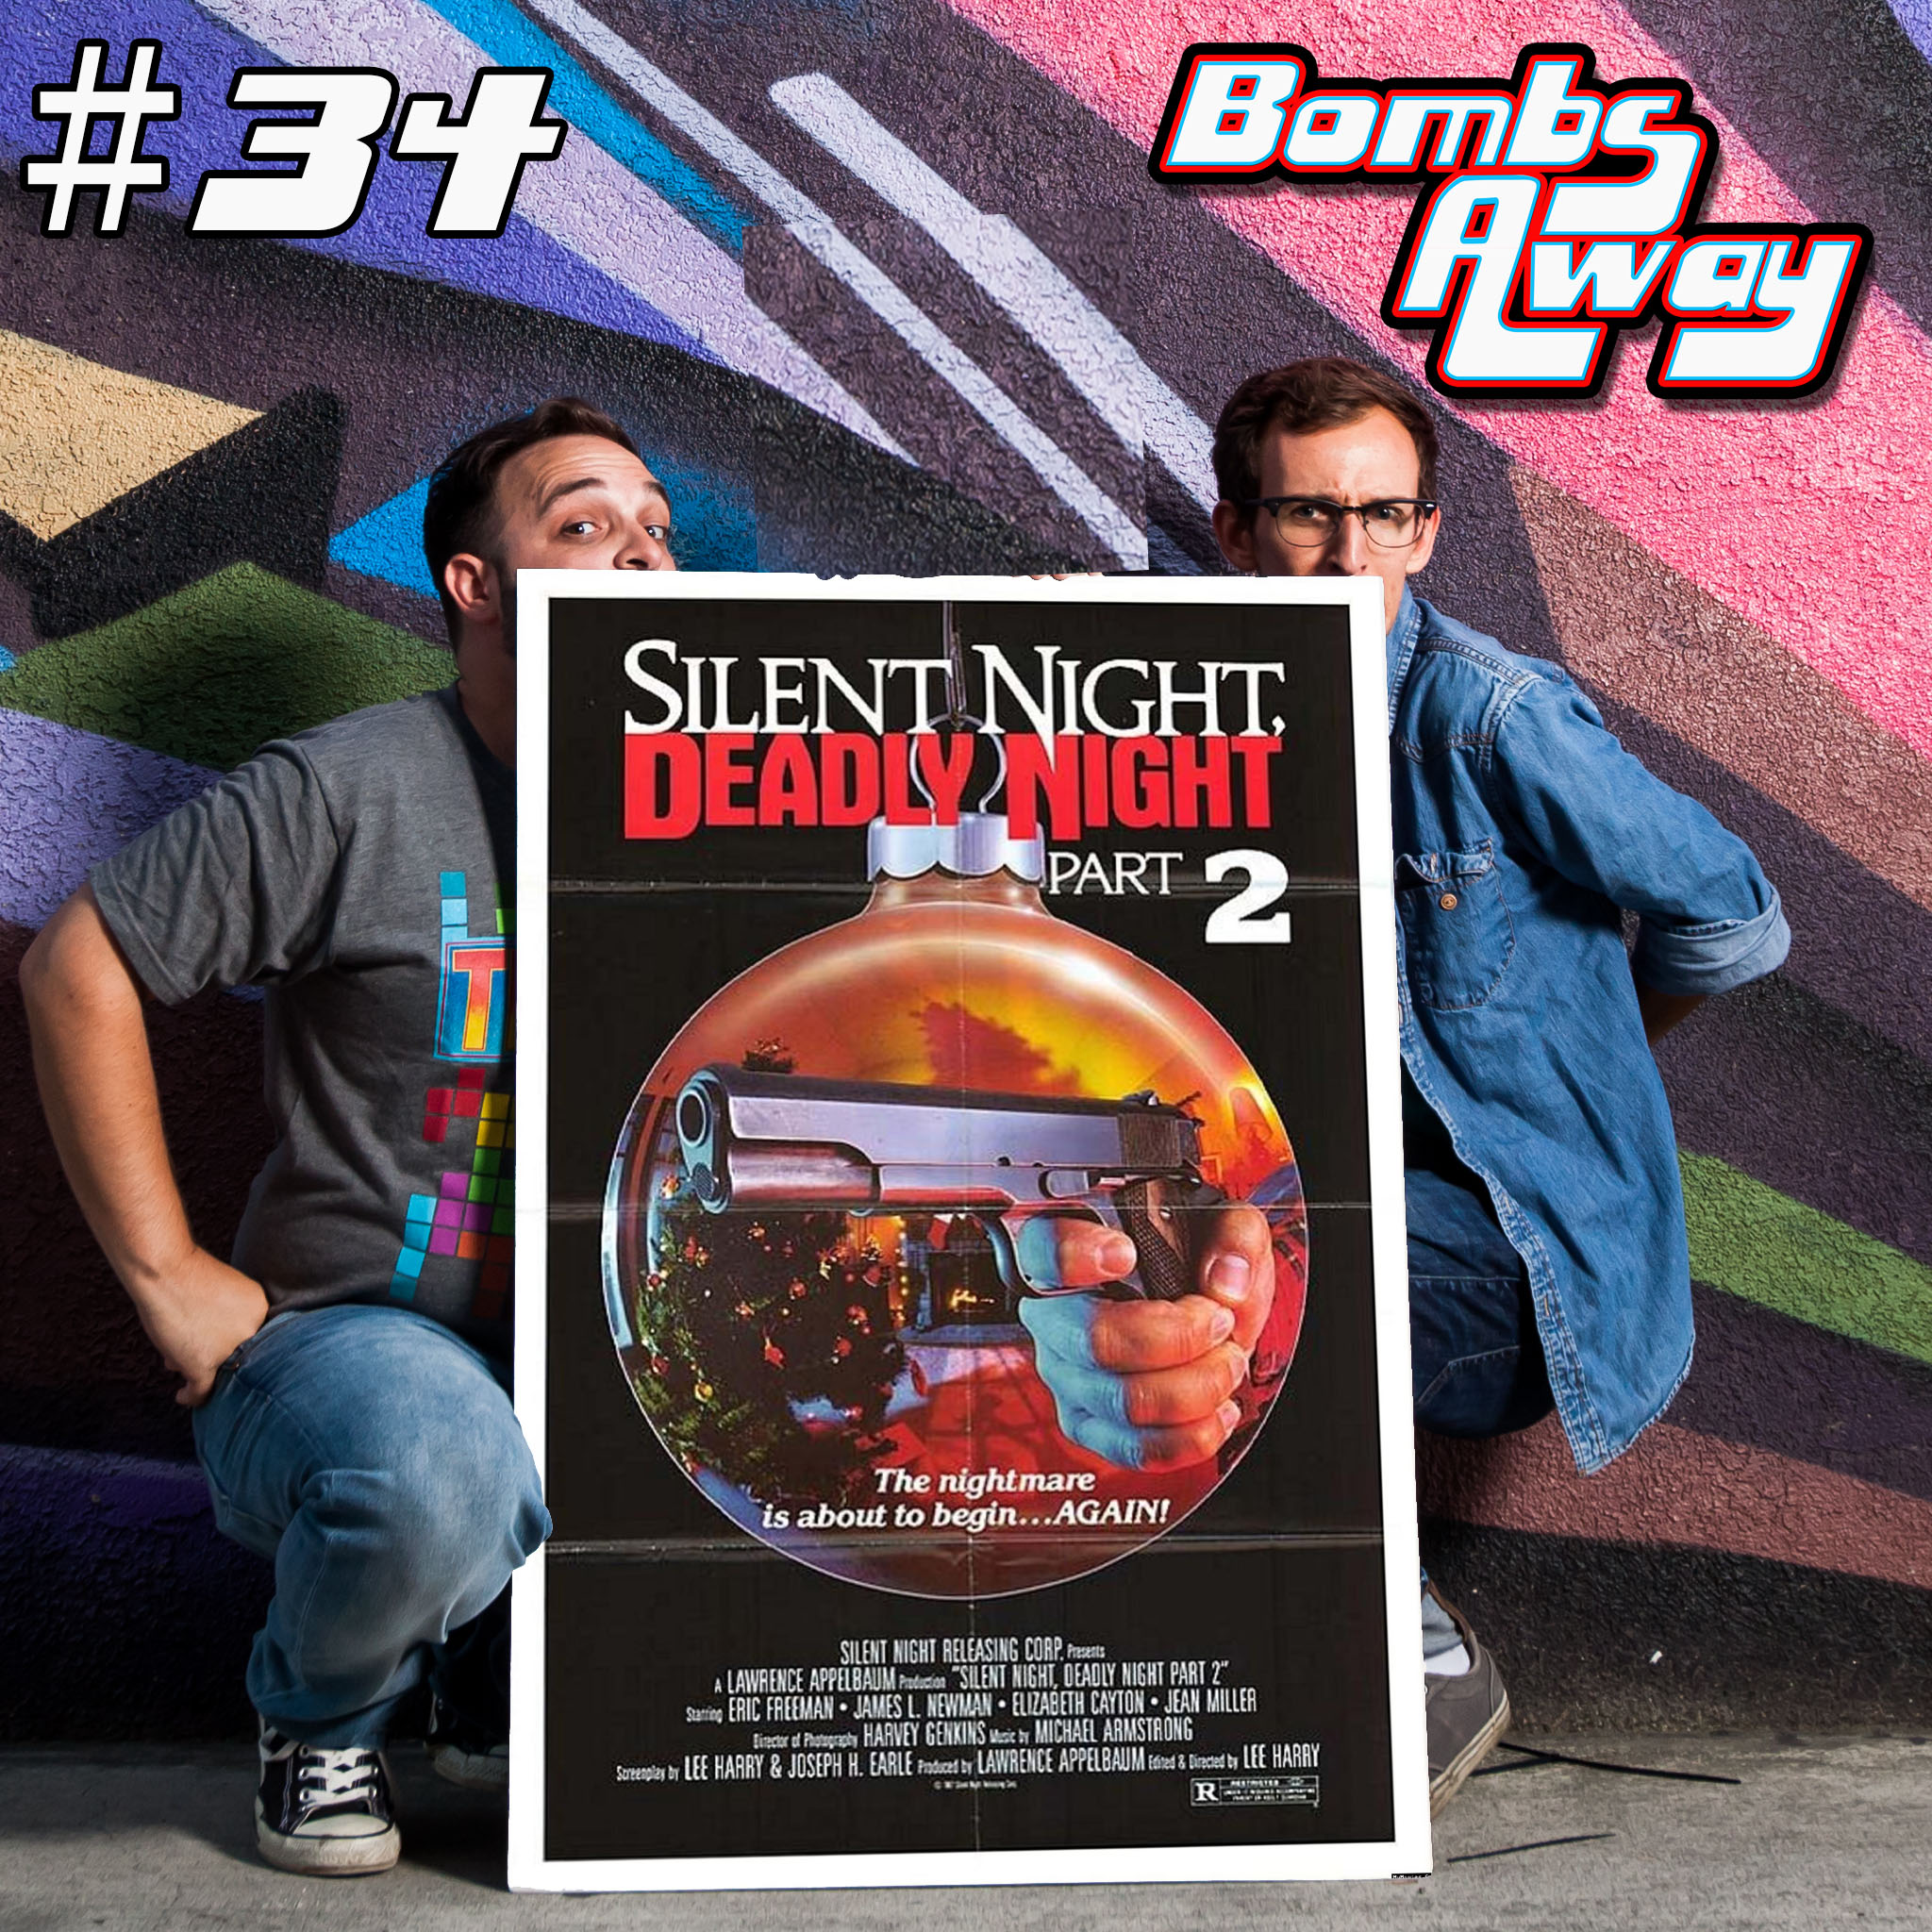 Christmas 2017: Episode 34 - Silent Night Deadly Night Part 2 (1987) [w/ Andrew & Paxton]